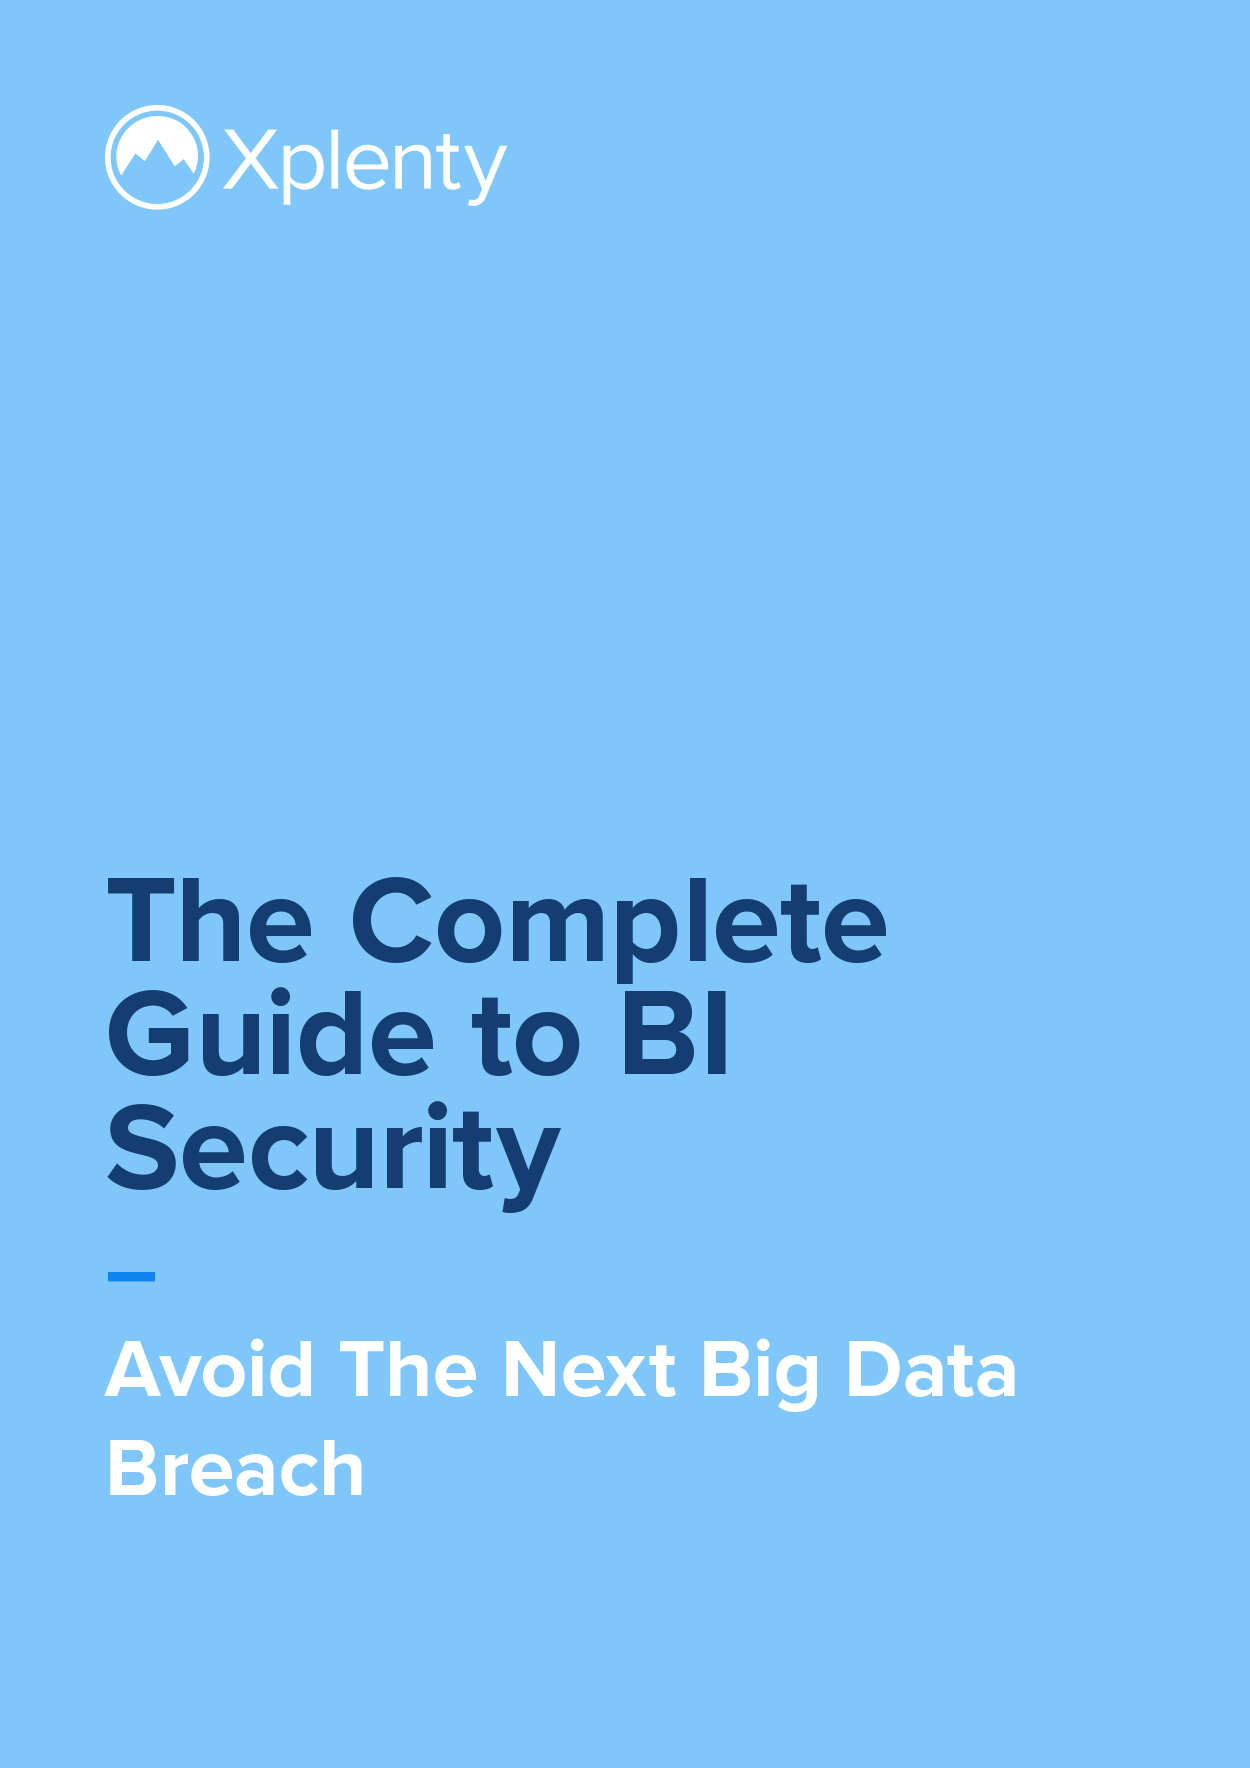 The Complete Guide to BI Security